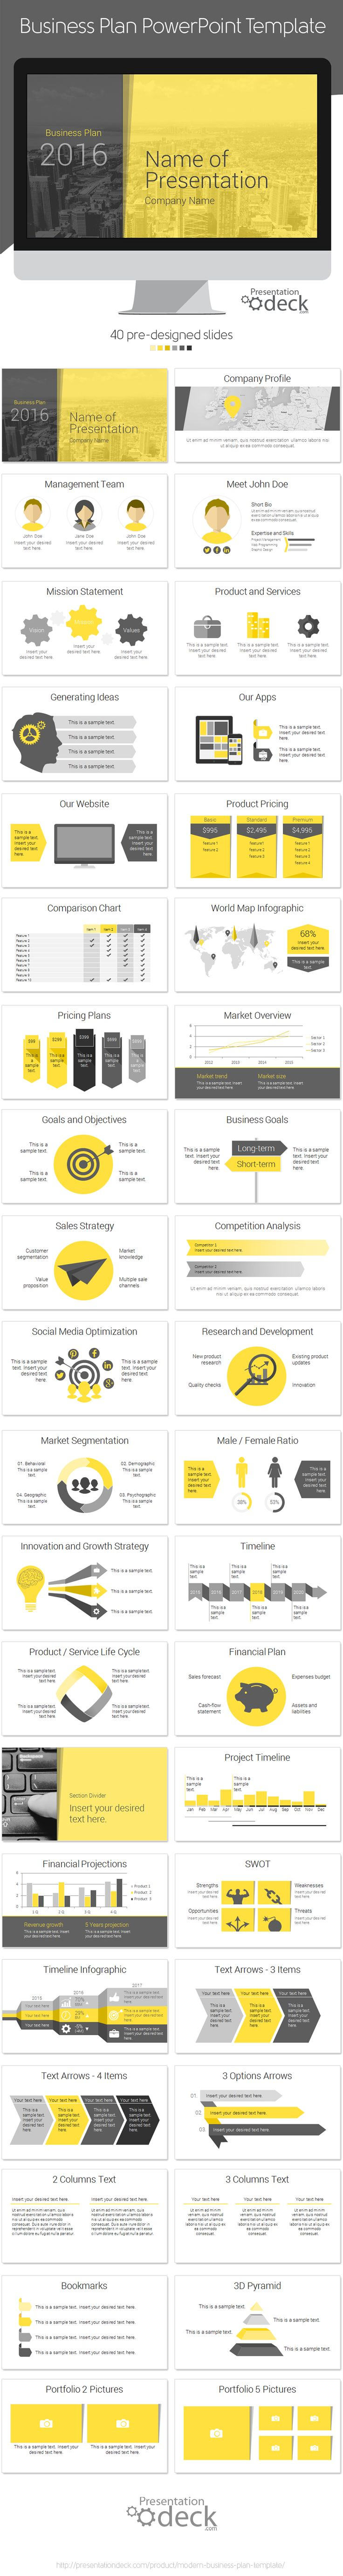 413 best ppt templates images on pinterest editorial design modern business plan powerpoint template toneelgroepblik Image collections